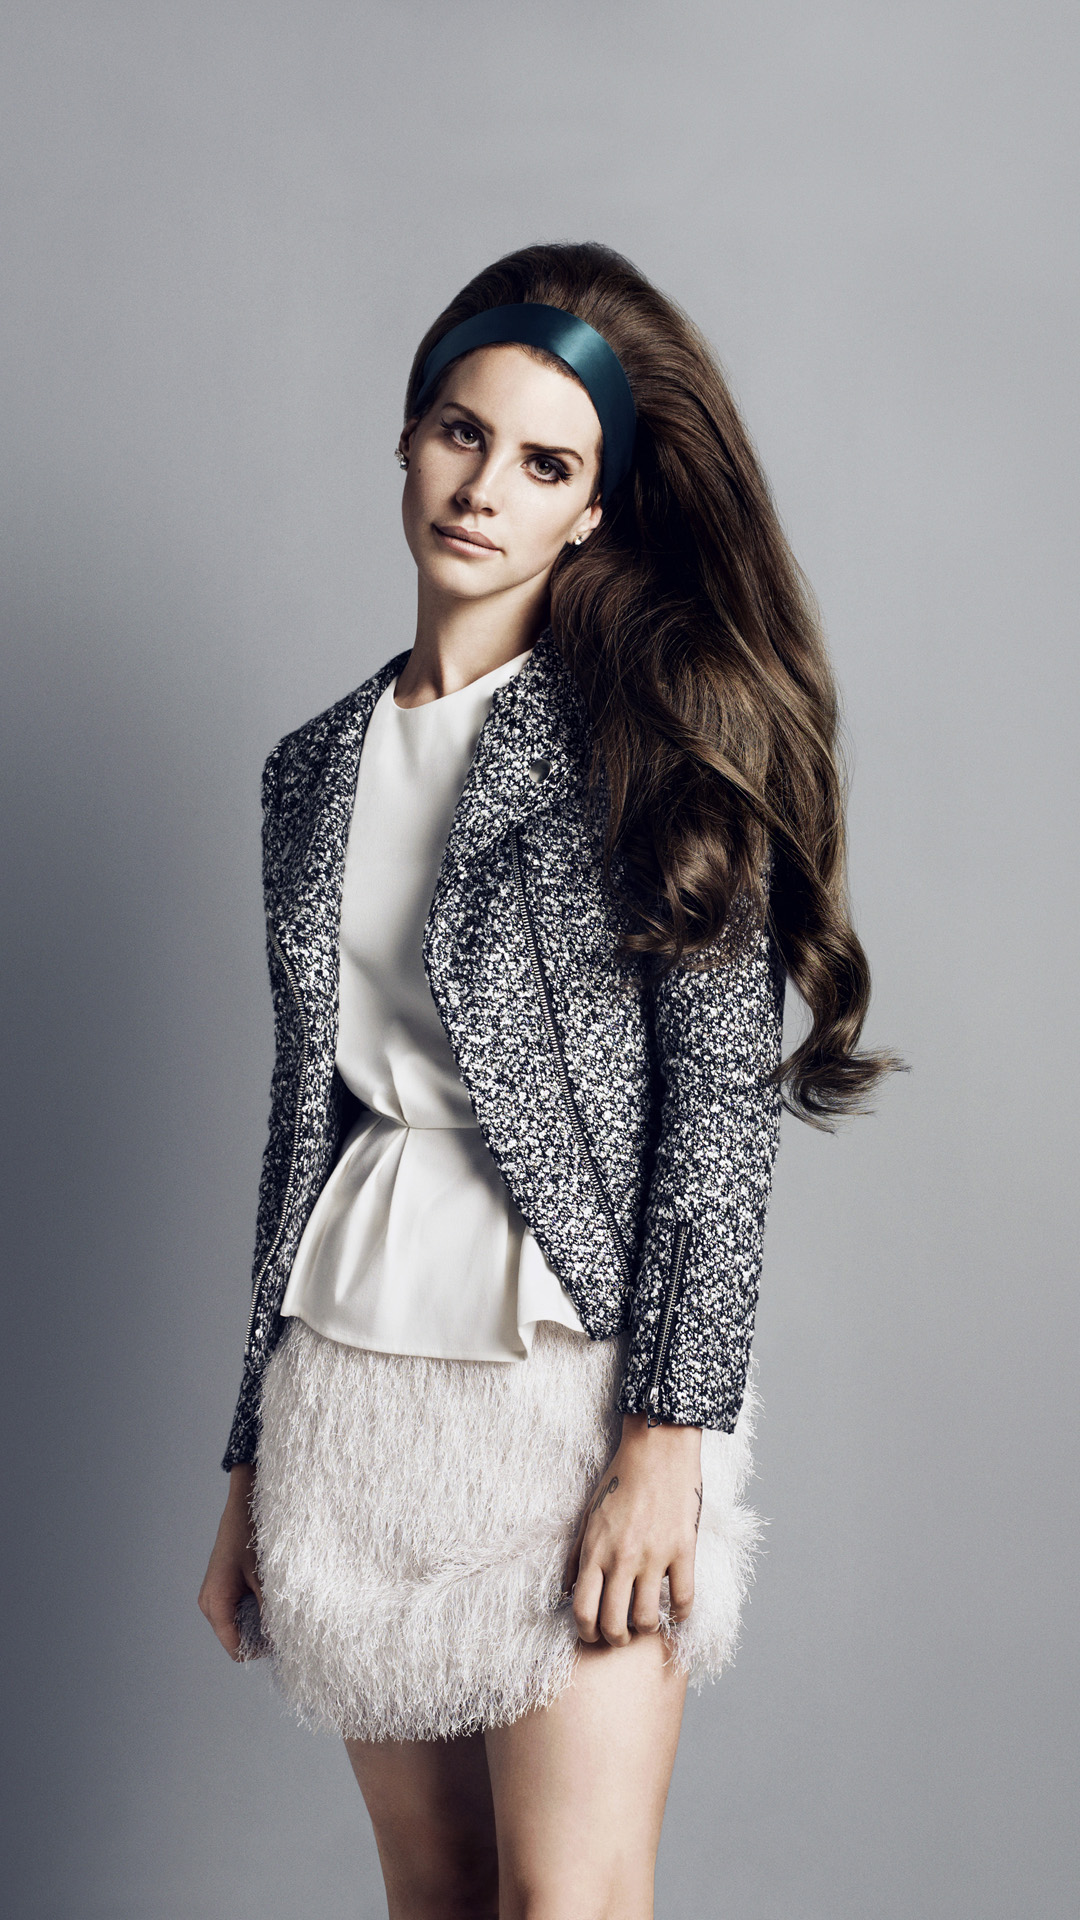 Lana Del Rey Best Htc One Wallpapers Free And Easy To Download